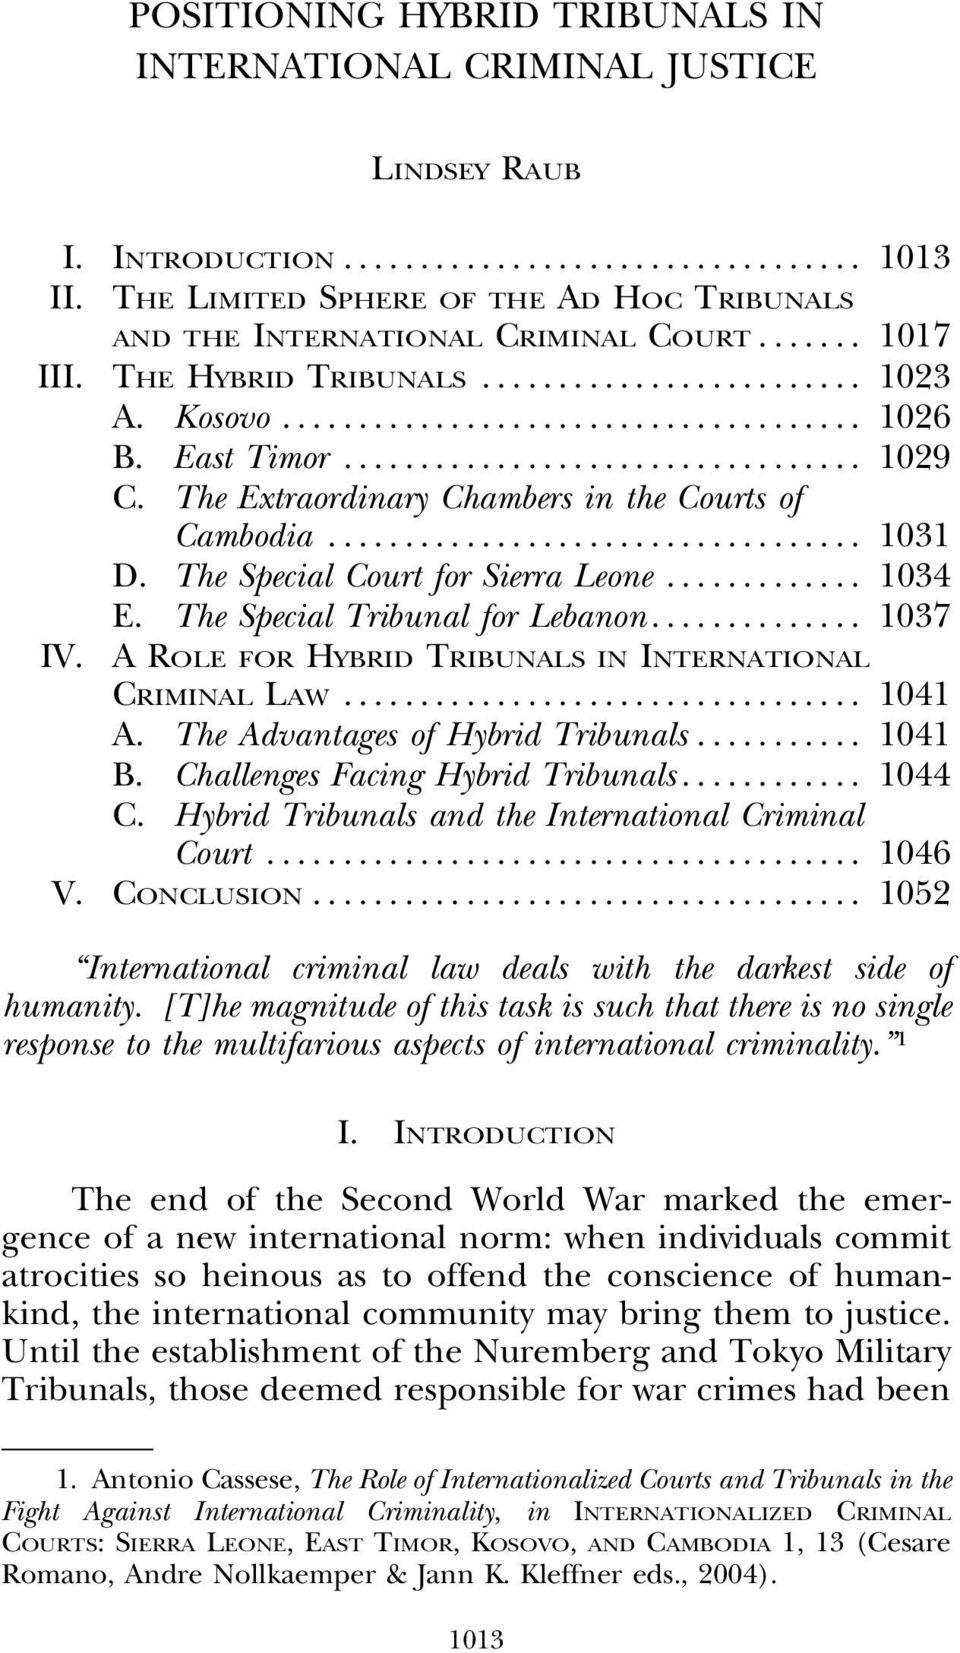 The Special Tribunal for Lebanon... 1037 IV. A ROLE FOR HYBRID TRIBUNALS IN INTERNATIONAL CRIMINAL LAW... 1041 A. The Advantages of Hybrid Tribunals... 1041 B. Challenges Facing Hybrid Tribunals.